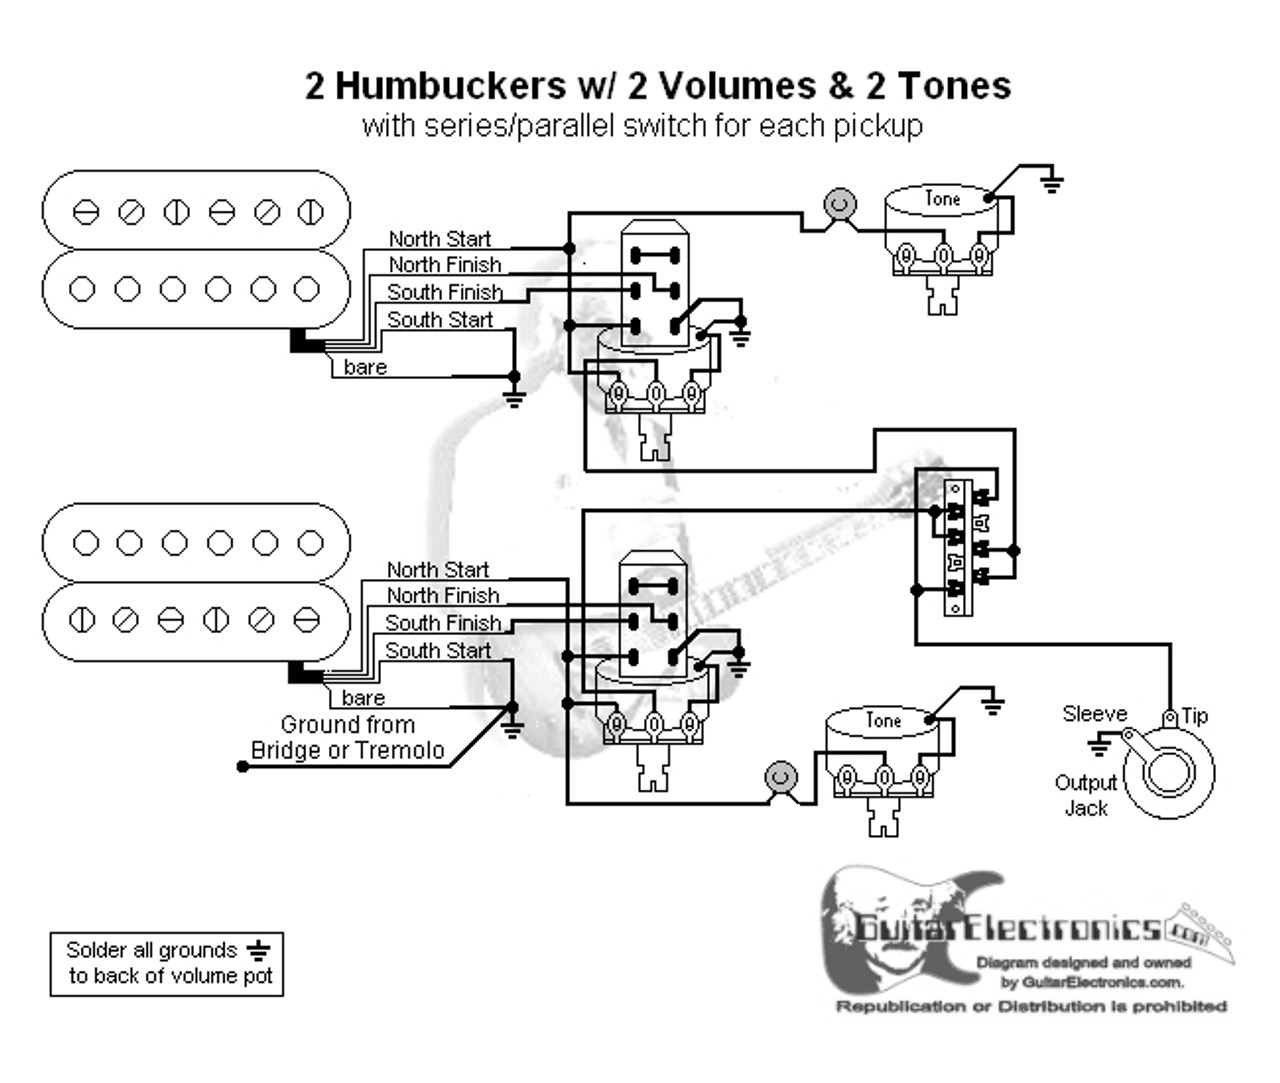 2 Humbuckers/3-Way Lever Switch/2 Volumes/2 Tones/Series Parallel